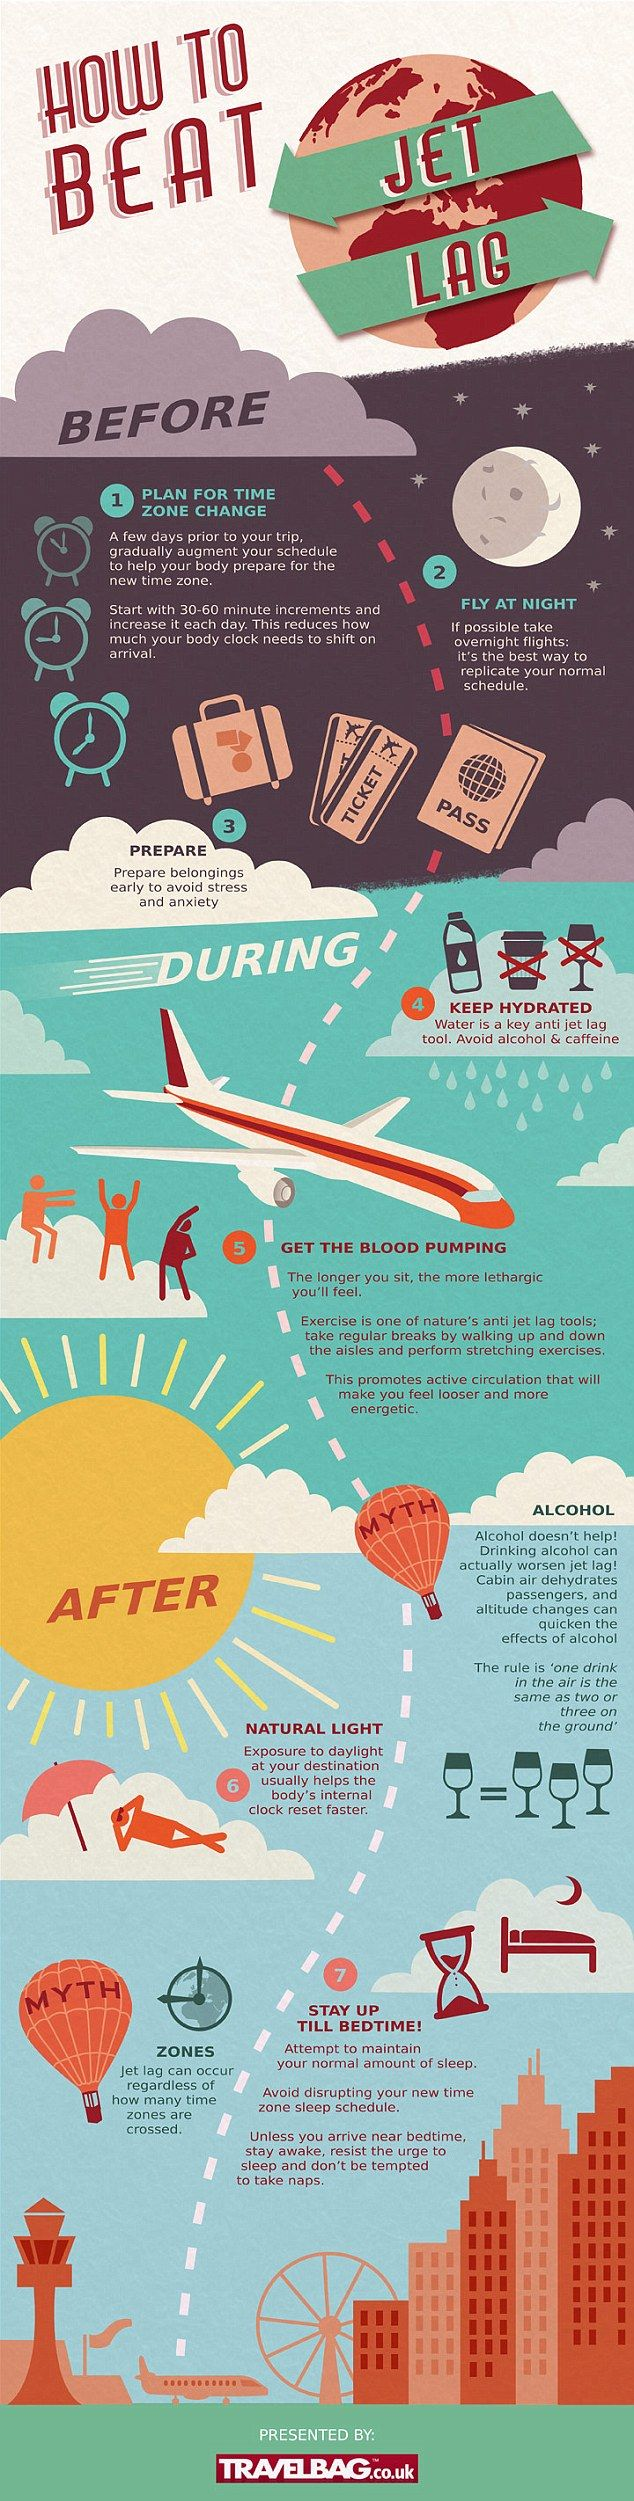 How to beat the dreaded jet lag